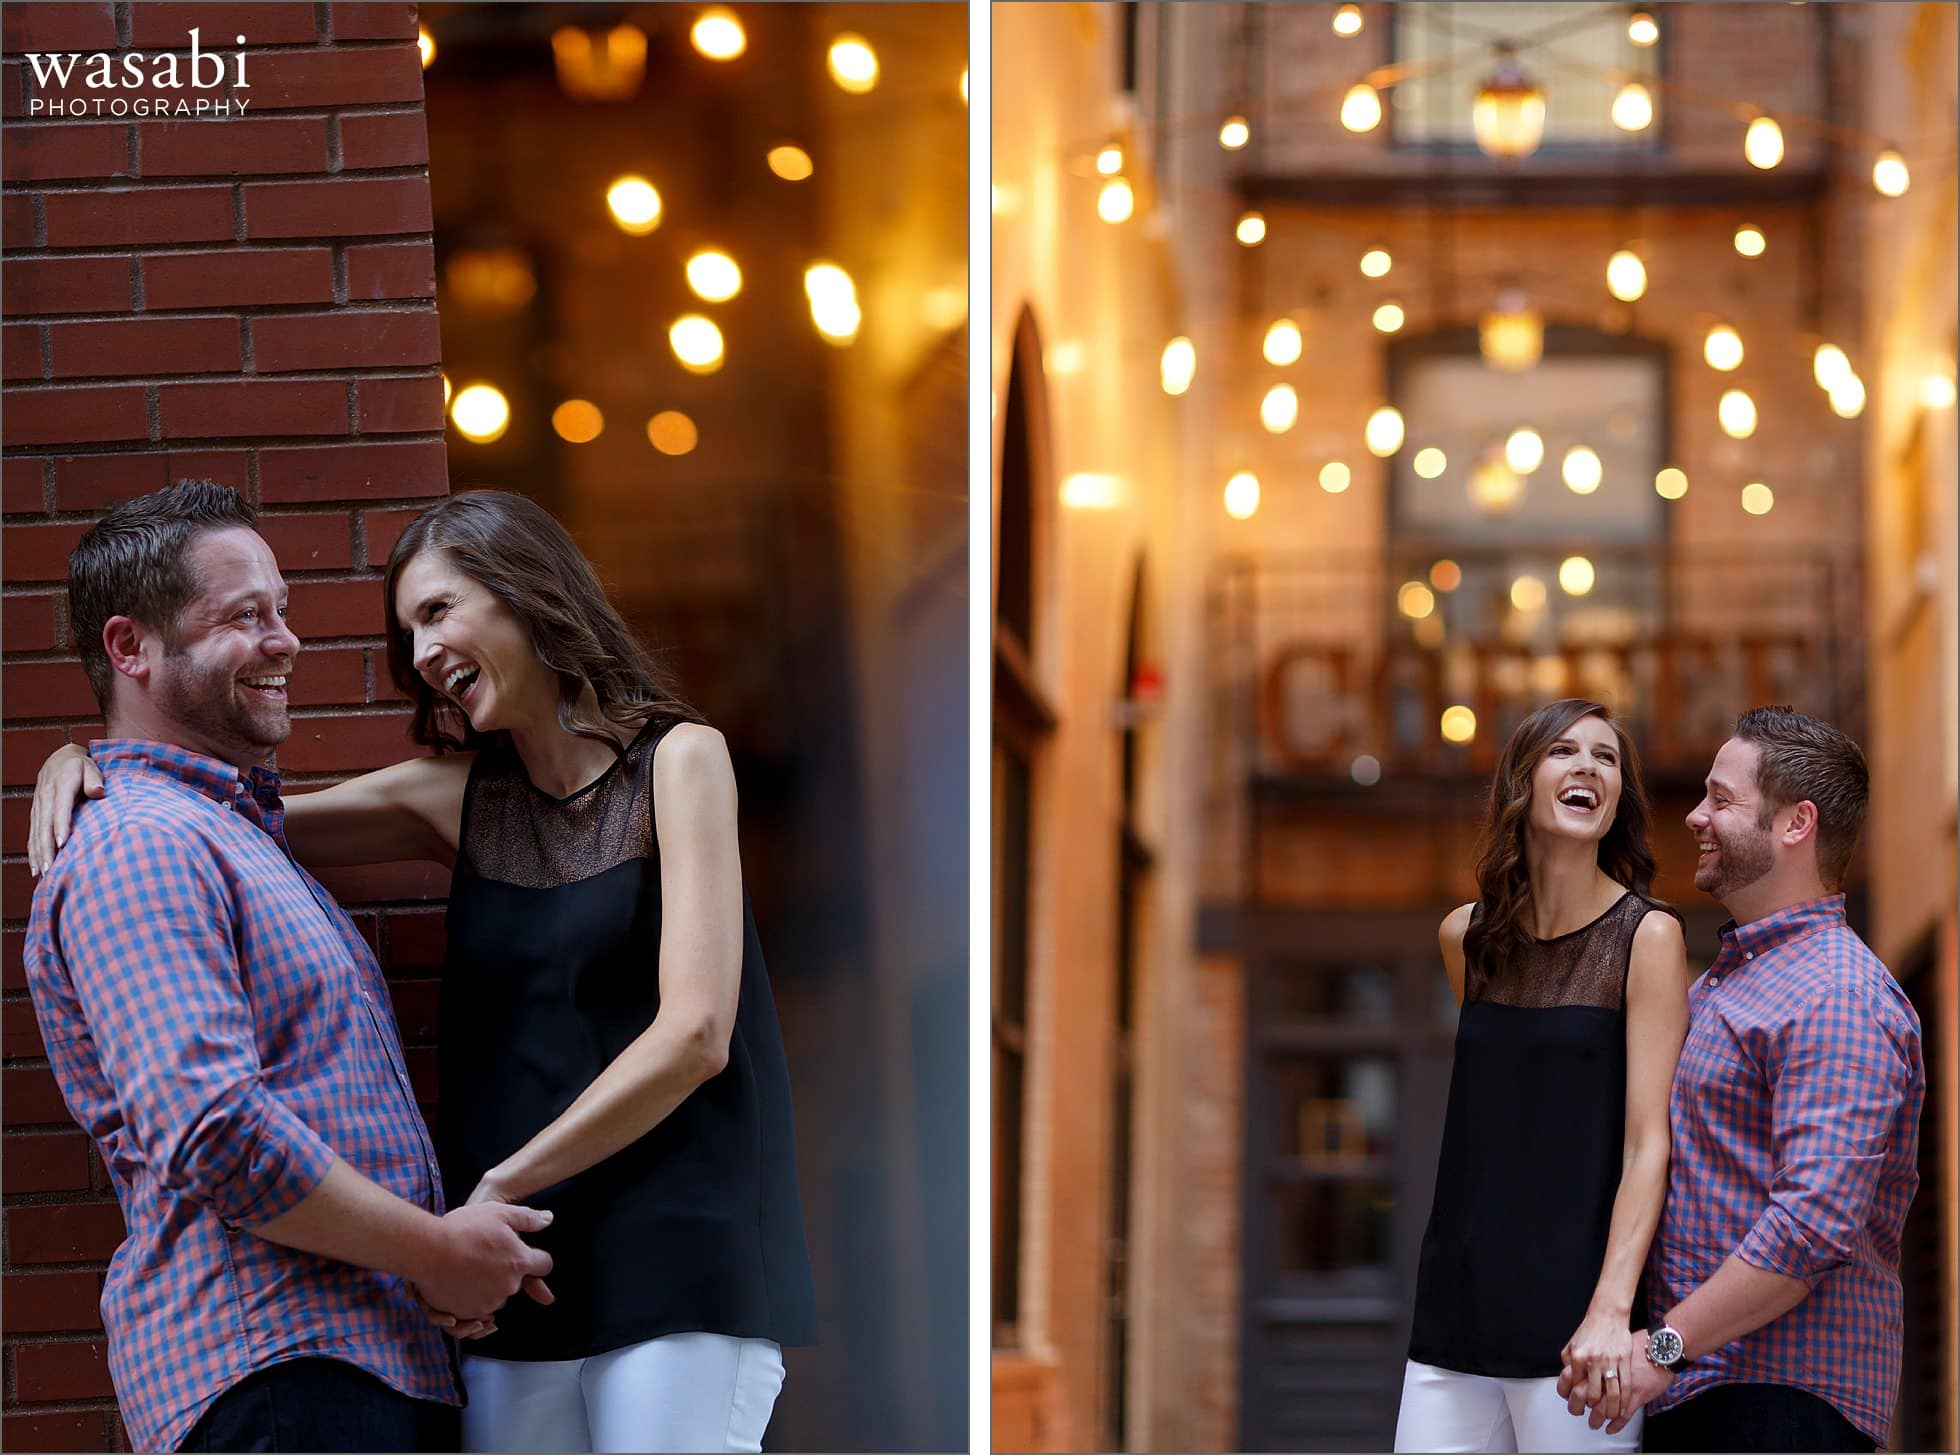 asado-coffee-shop-engagement-photos-02